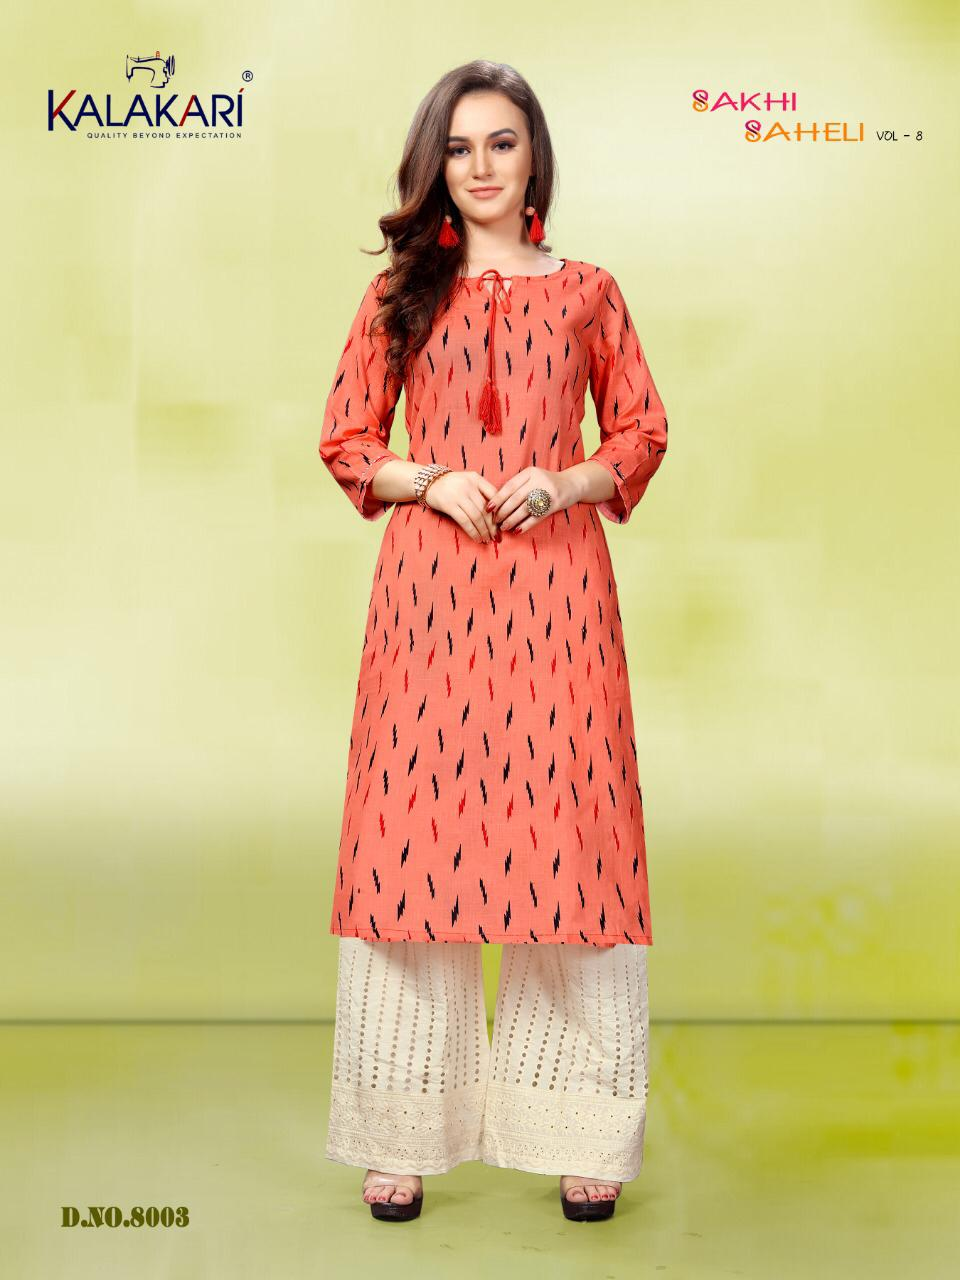 Kalakari NX Sakhi Saheli Vol 8 collection 2